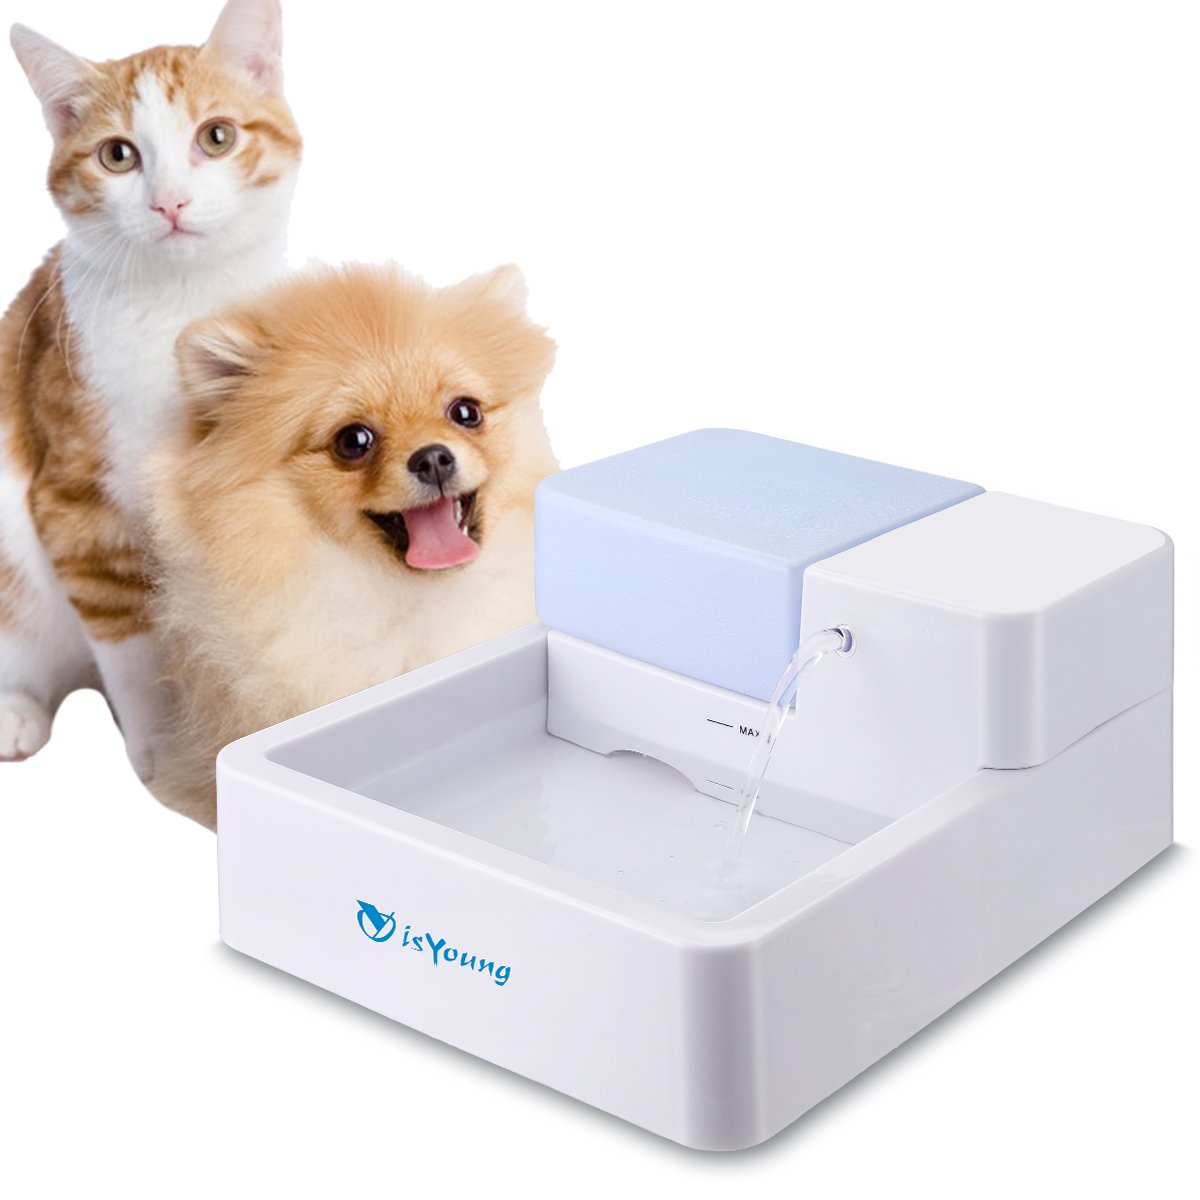 Pet Supplies : Cat Water Dispenser, isYoung Pet Fountain Ultra Quiet  Drinking for Cats and Dogs 1.8L Water Capacity with Activated Carbon Filter  and LED ...